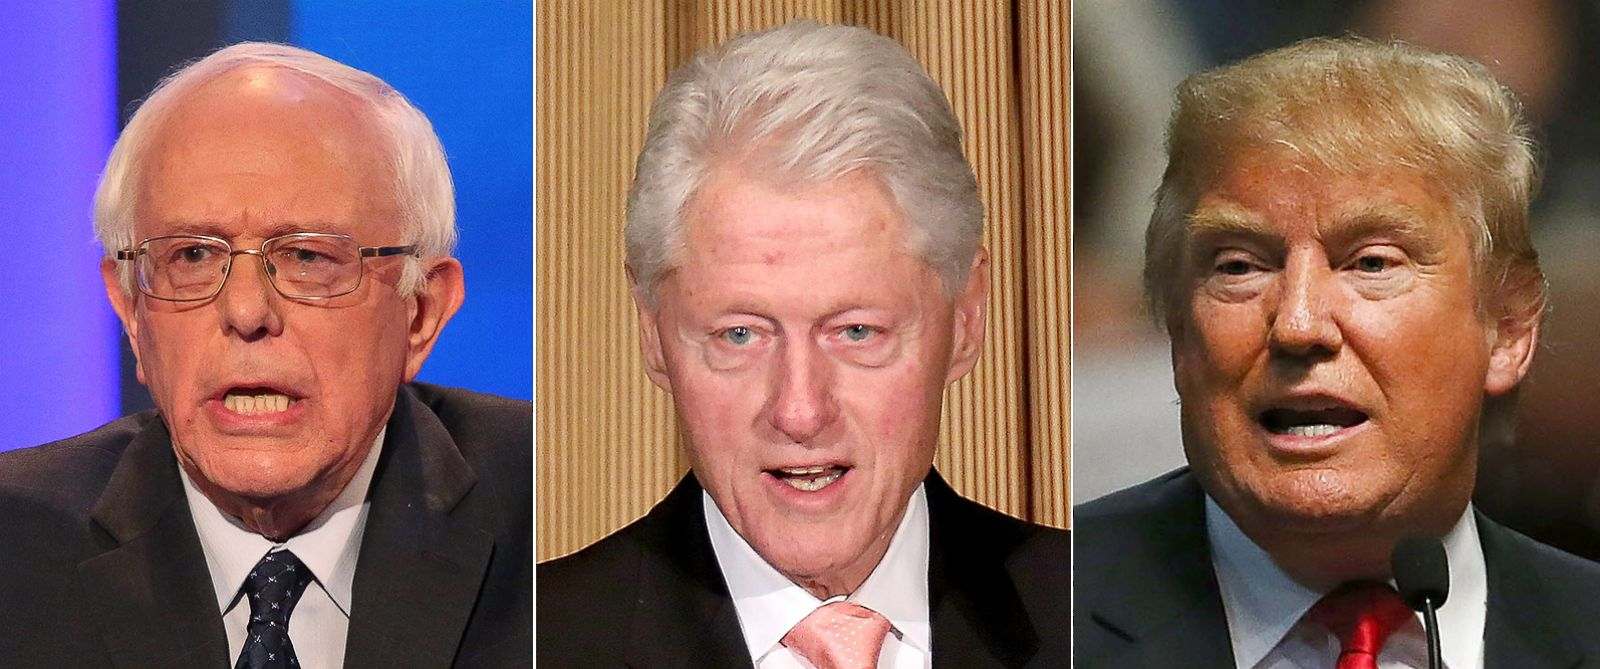 PHOTO: Bernie Sanders | Bill Clinton | Donald Trump